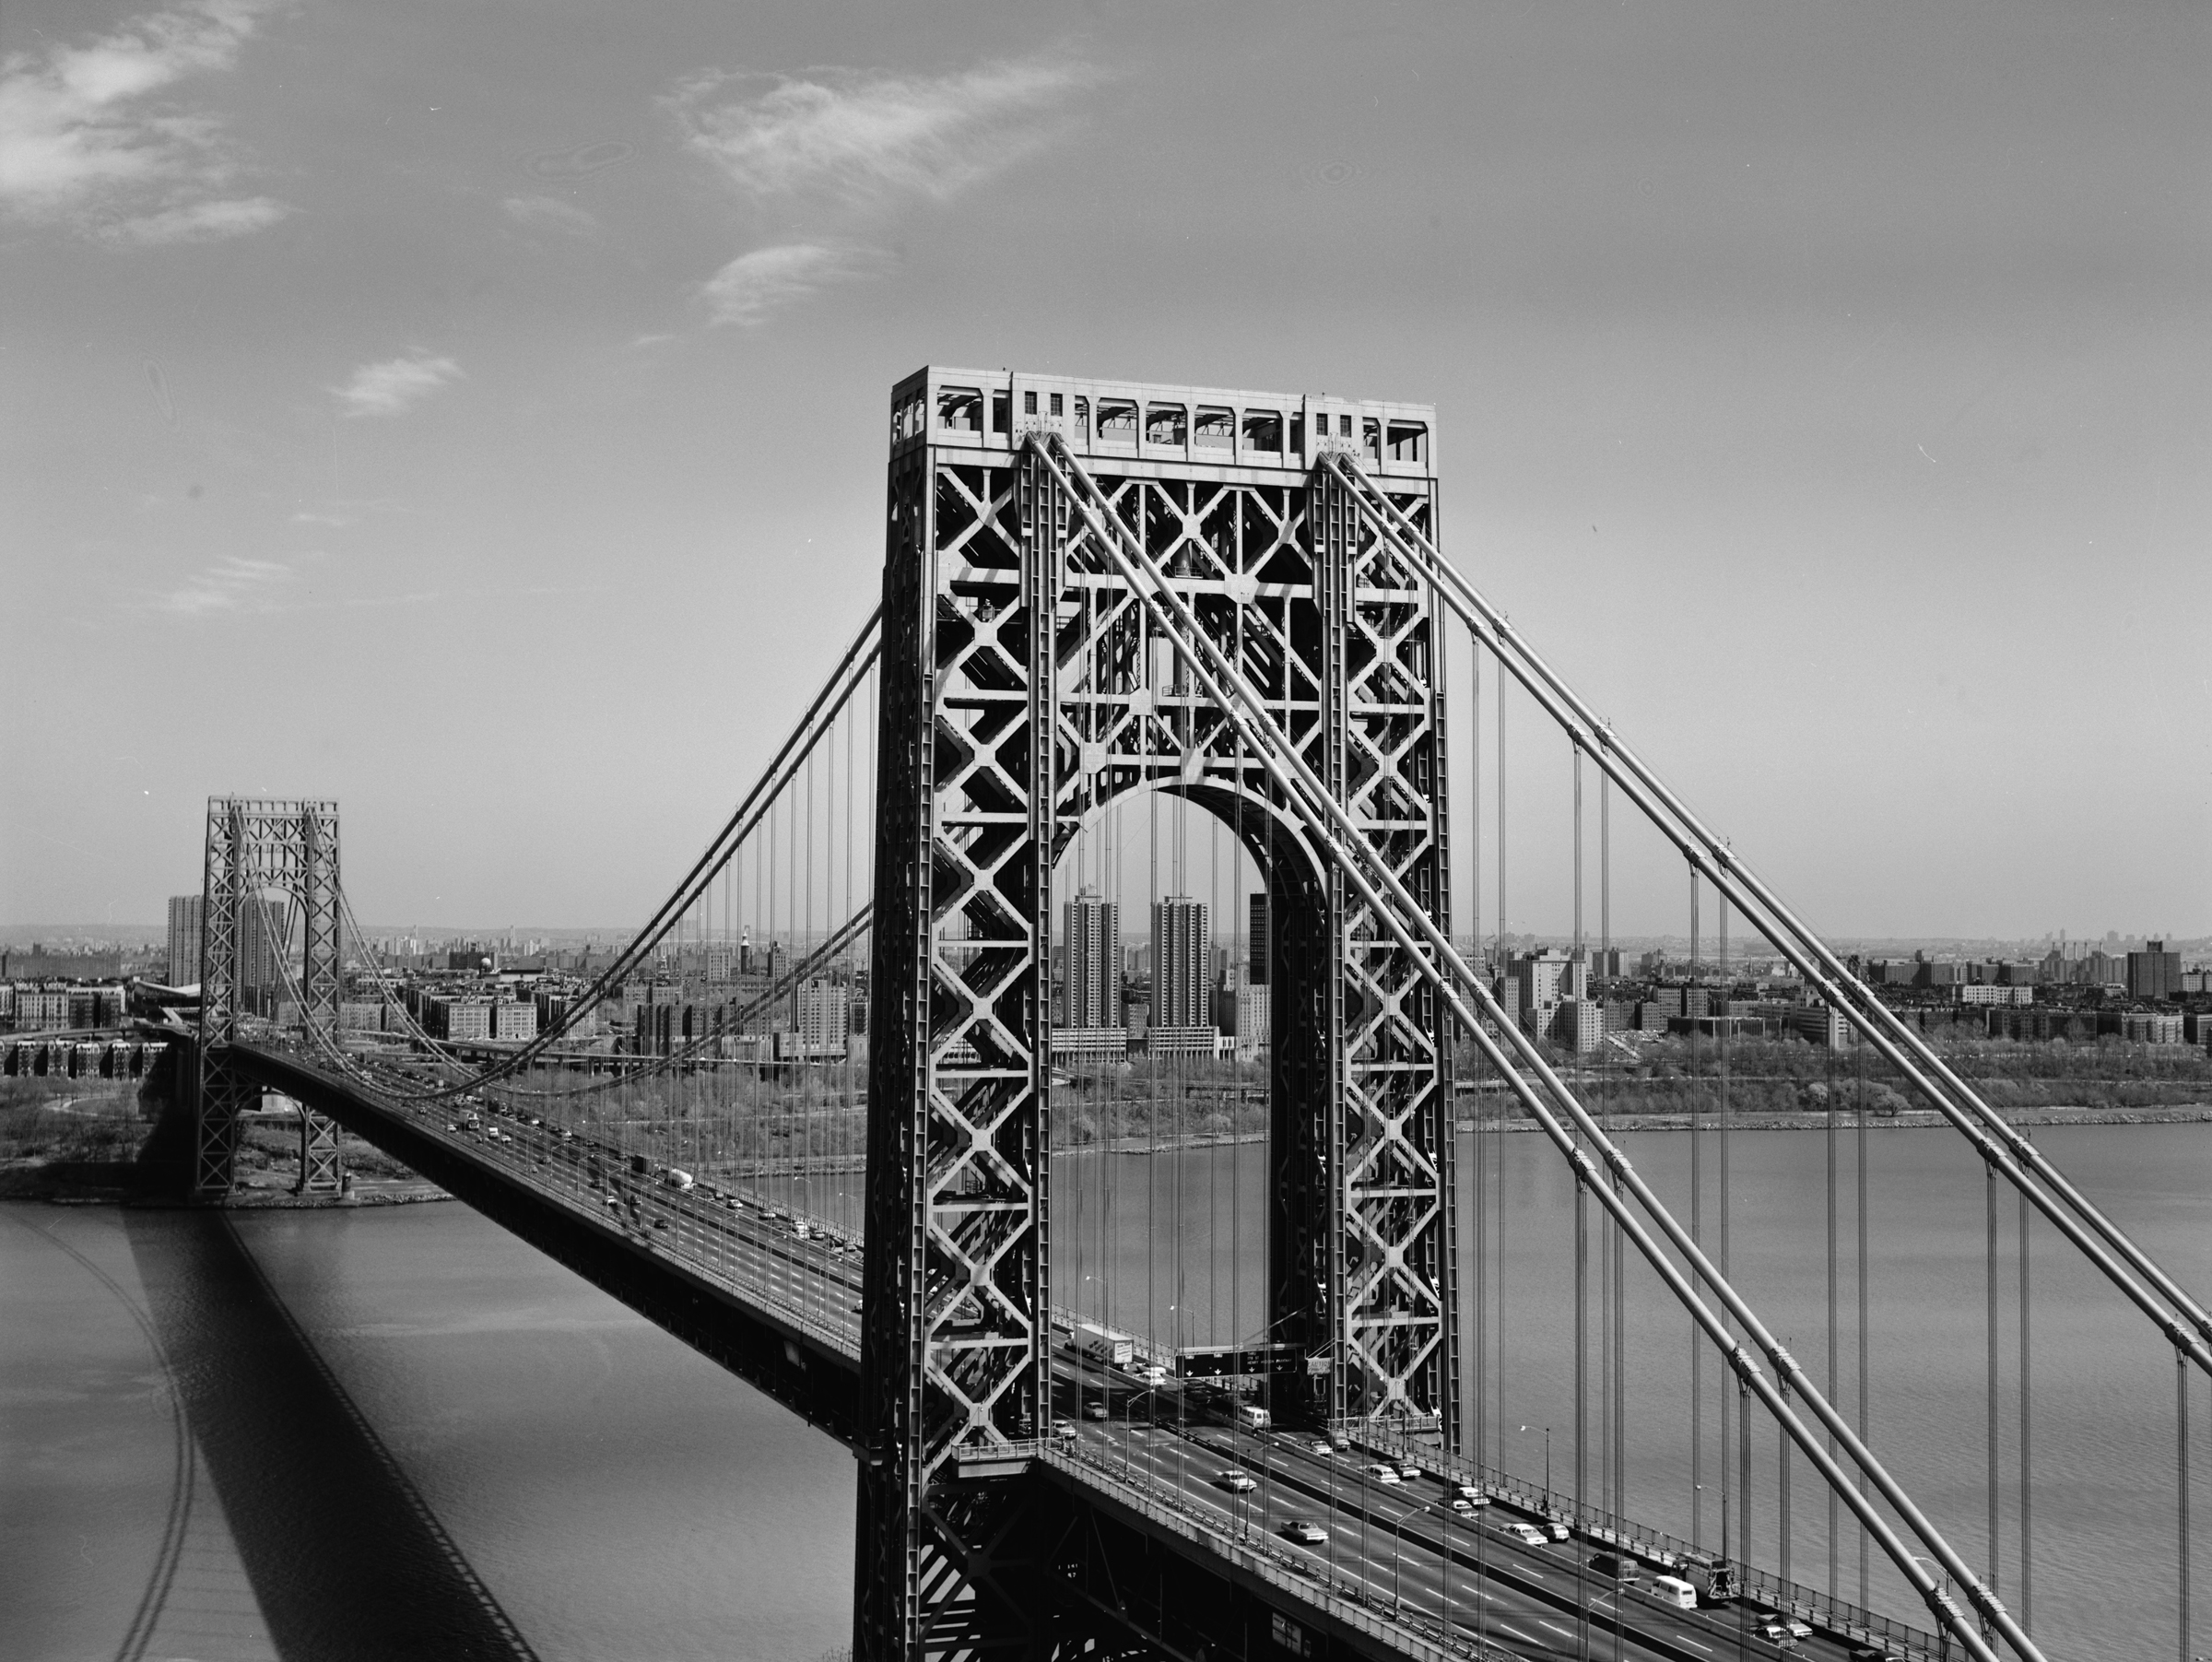 POLL: How will Bridgegate wrap up?